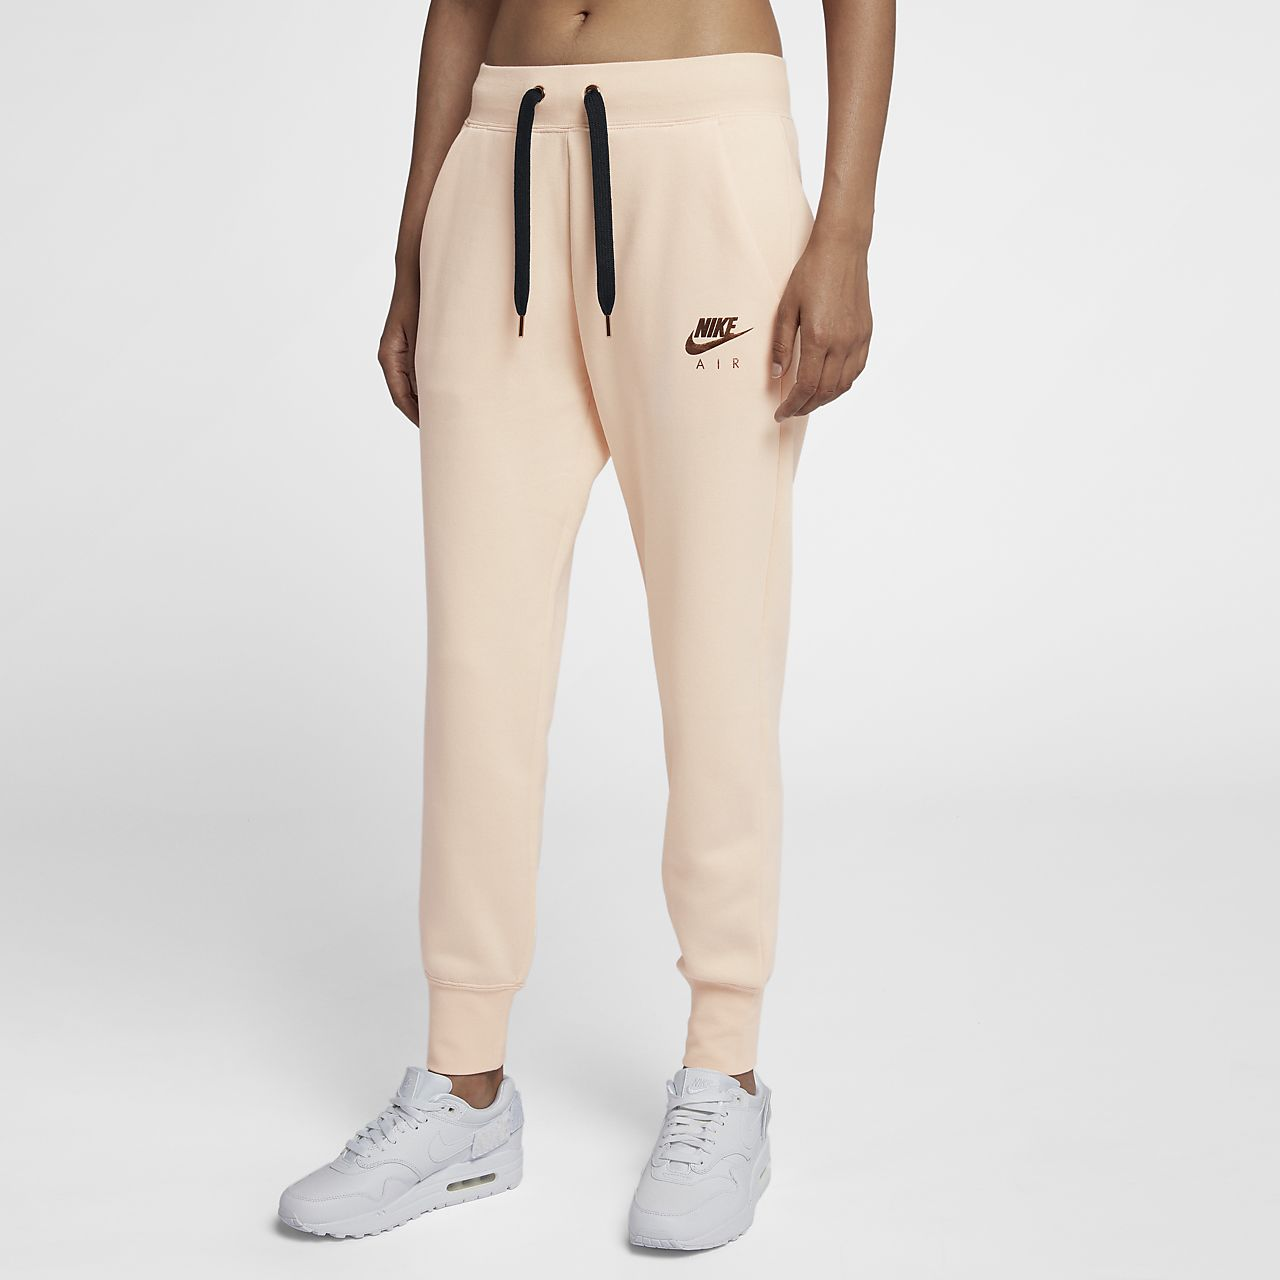 Nike Air Women's Fleece Metallic Trousers